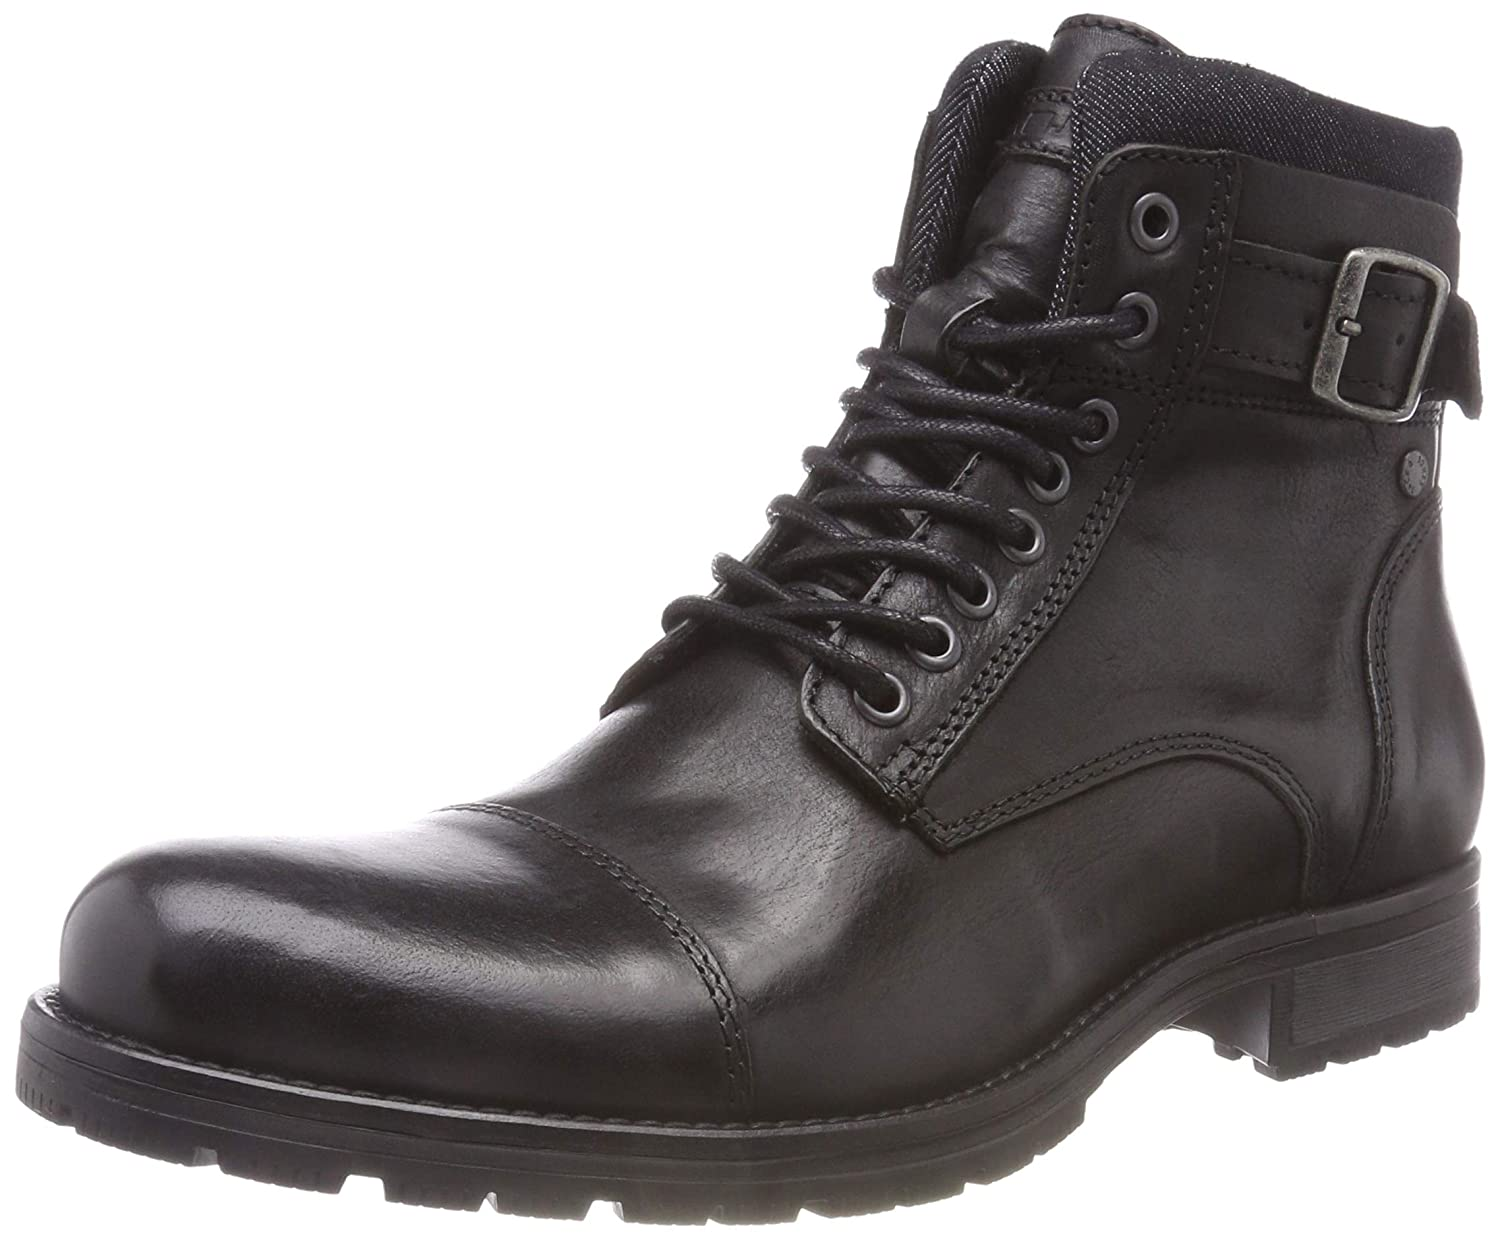 TALLA 43 EU. Jack & Jones Jfwalbany Leather Anthracite STS, Botas Estilo Motero para Hombre